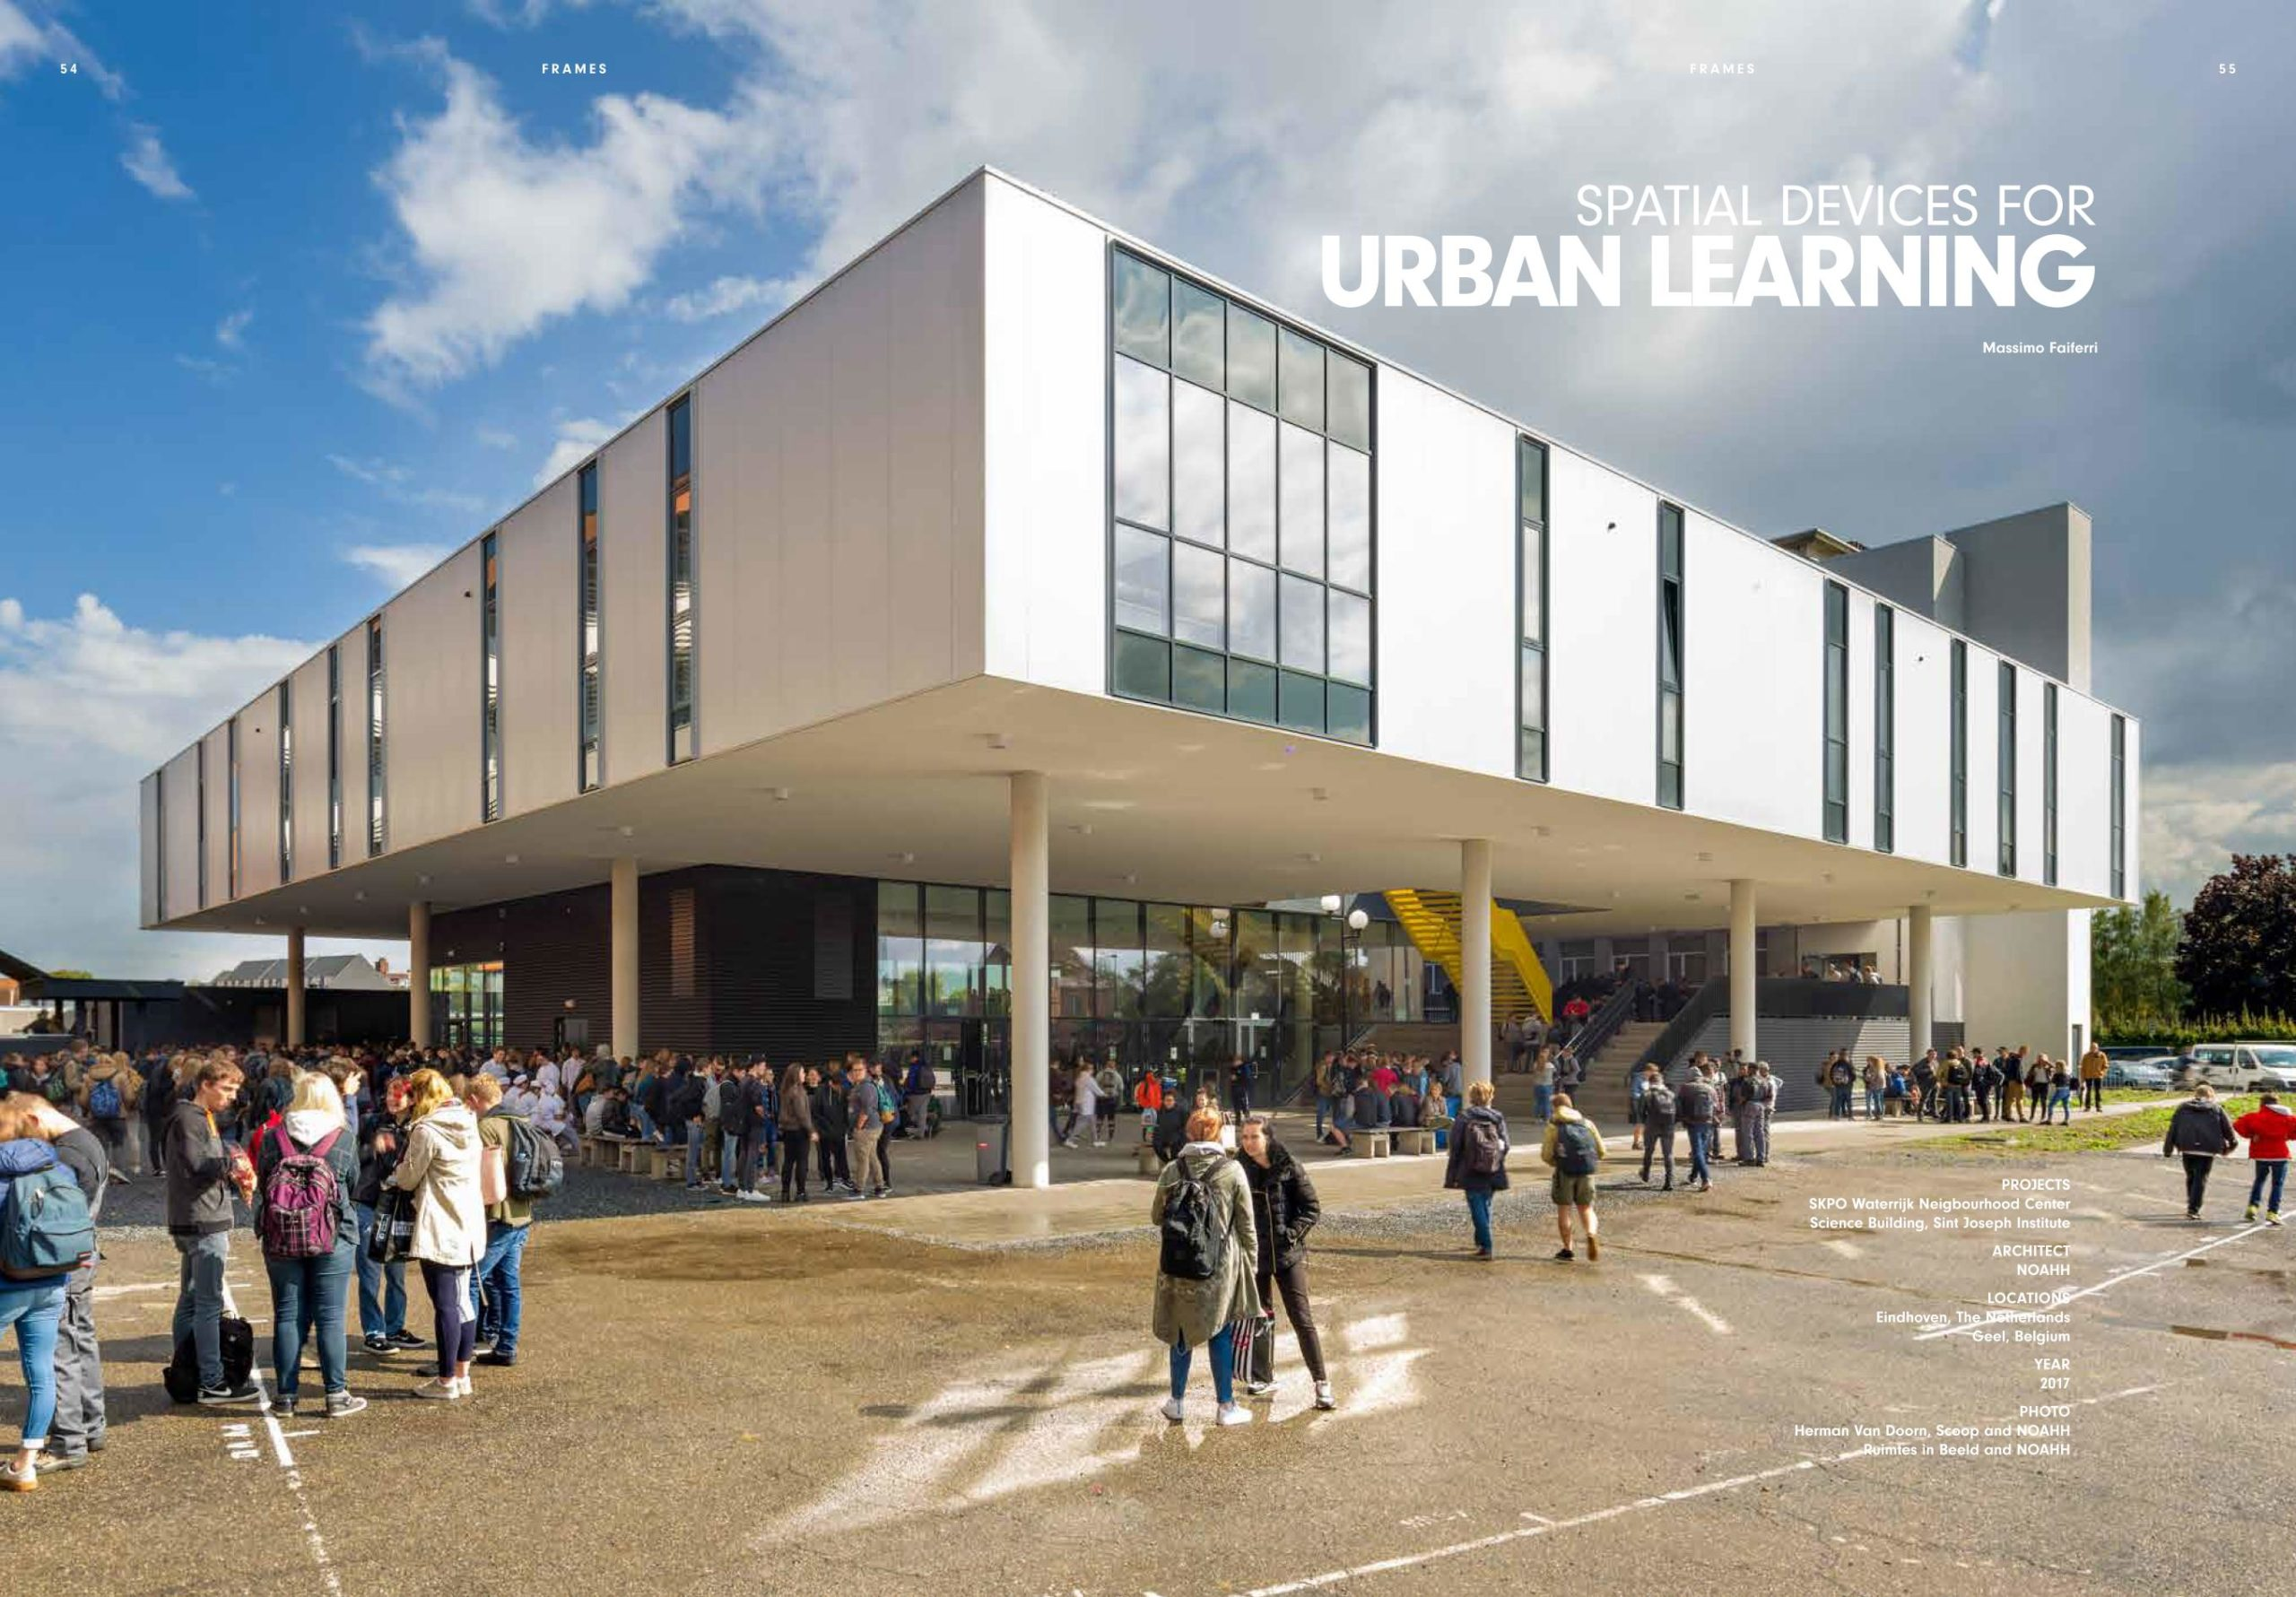 SPATIAL DEVICES FOR URBAN LEARNING